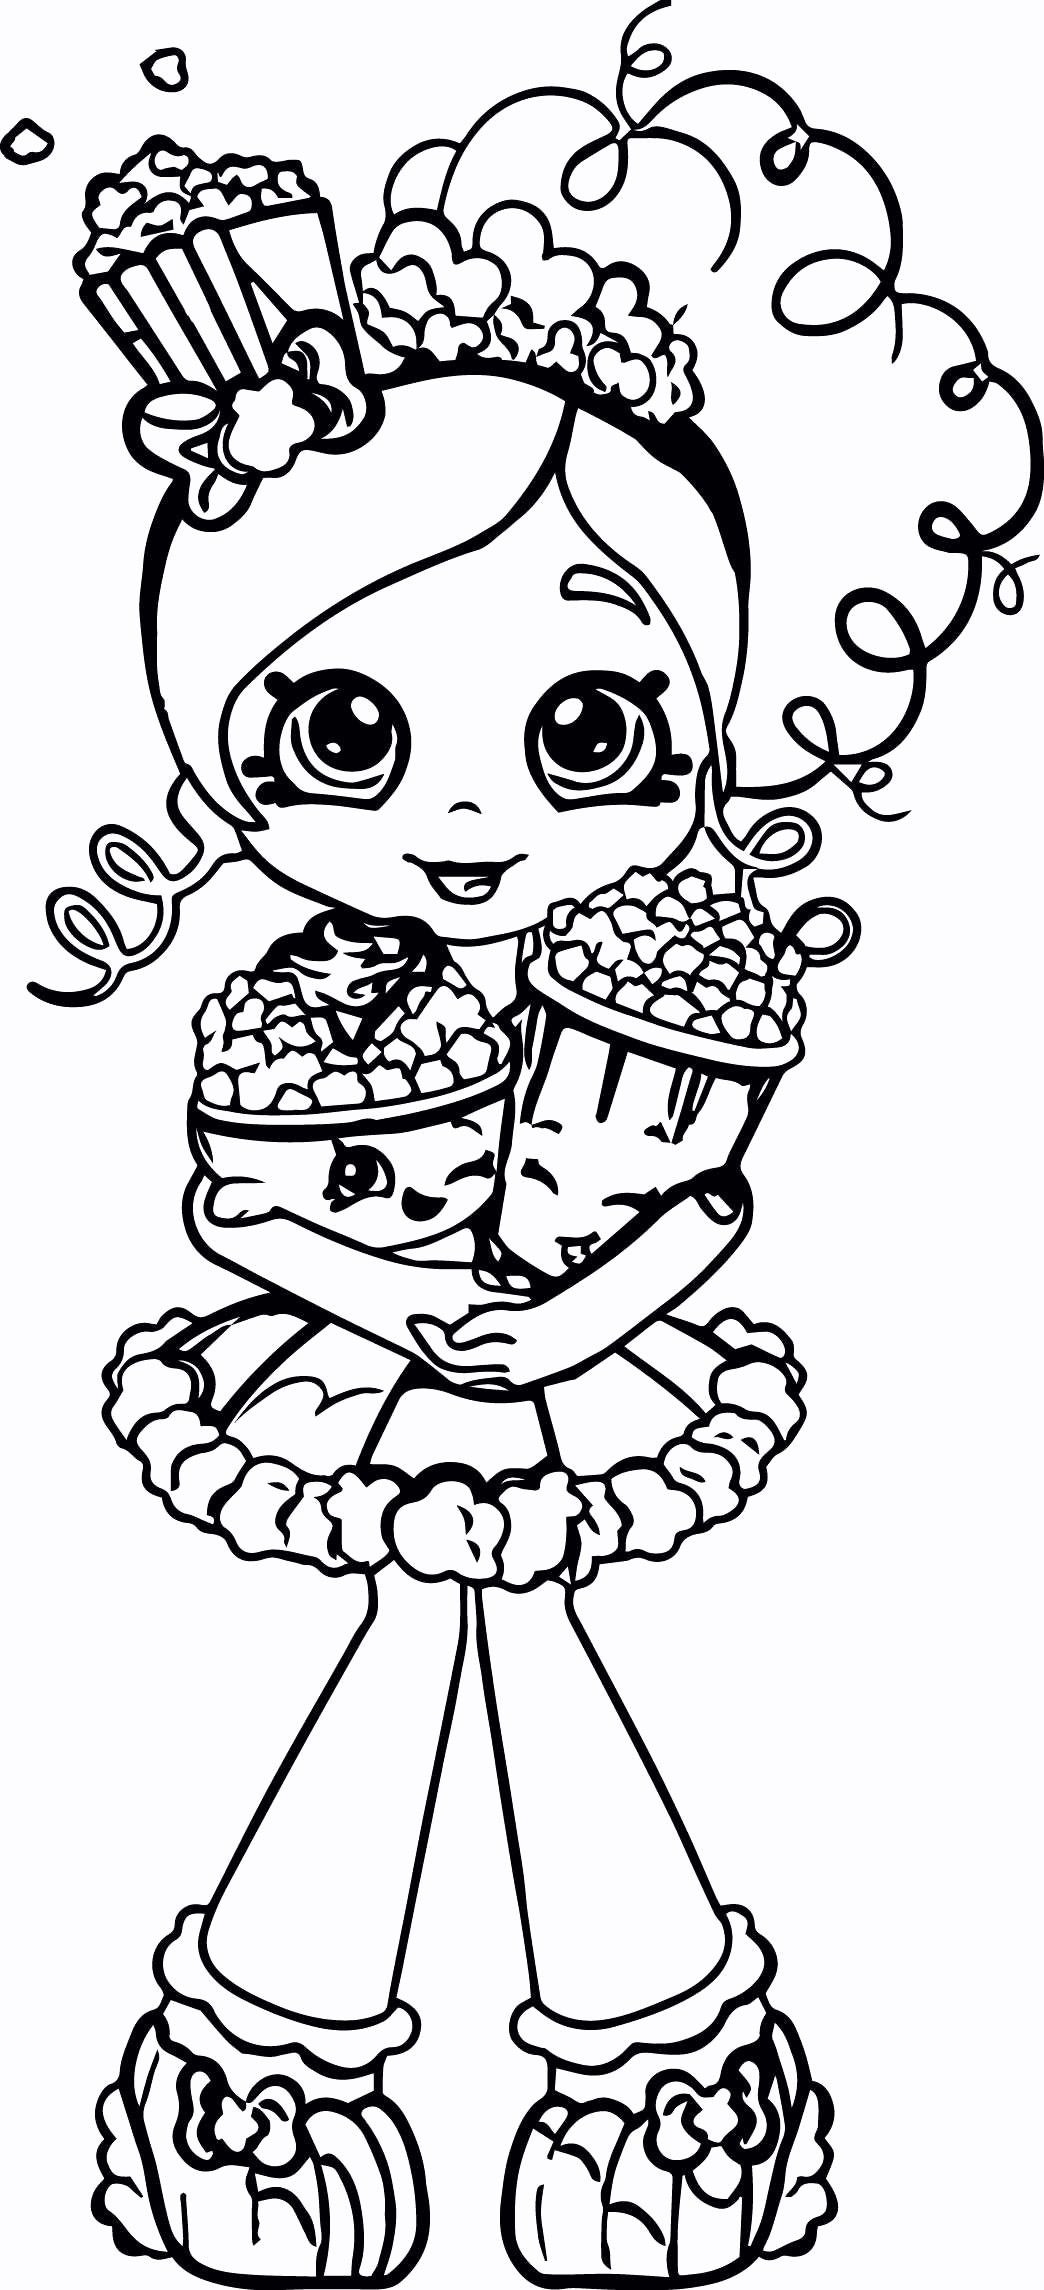 Free Shopkins Coloring Pages Printable Free Coloring Sheets Shopkin Coloring Pages Coloring Pages For Girls Shopkins Colouring Pages